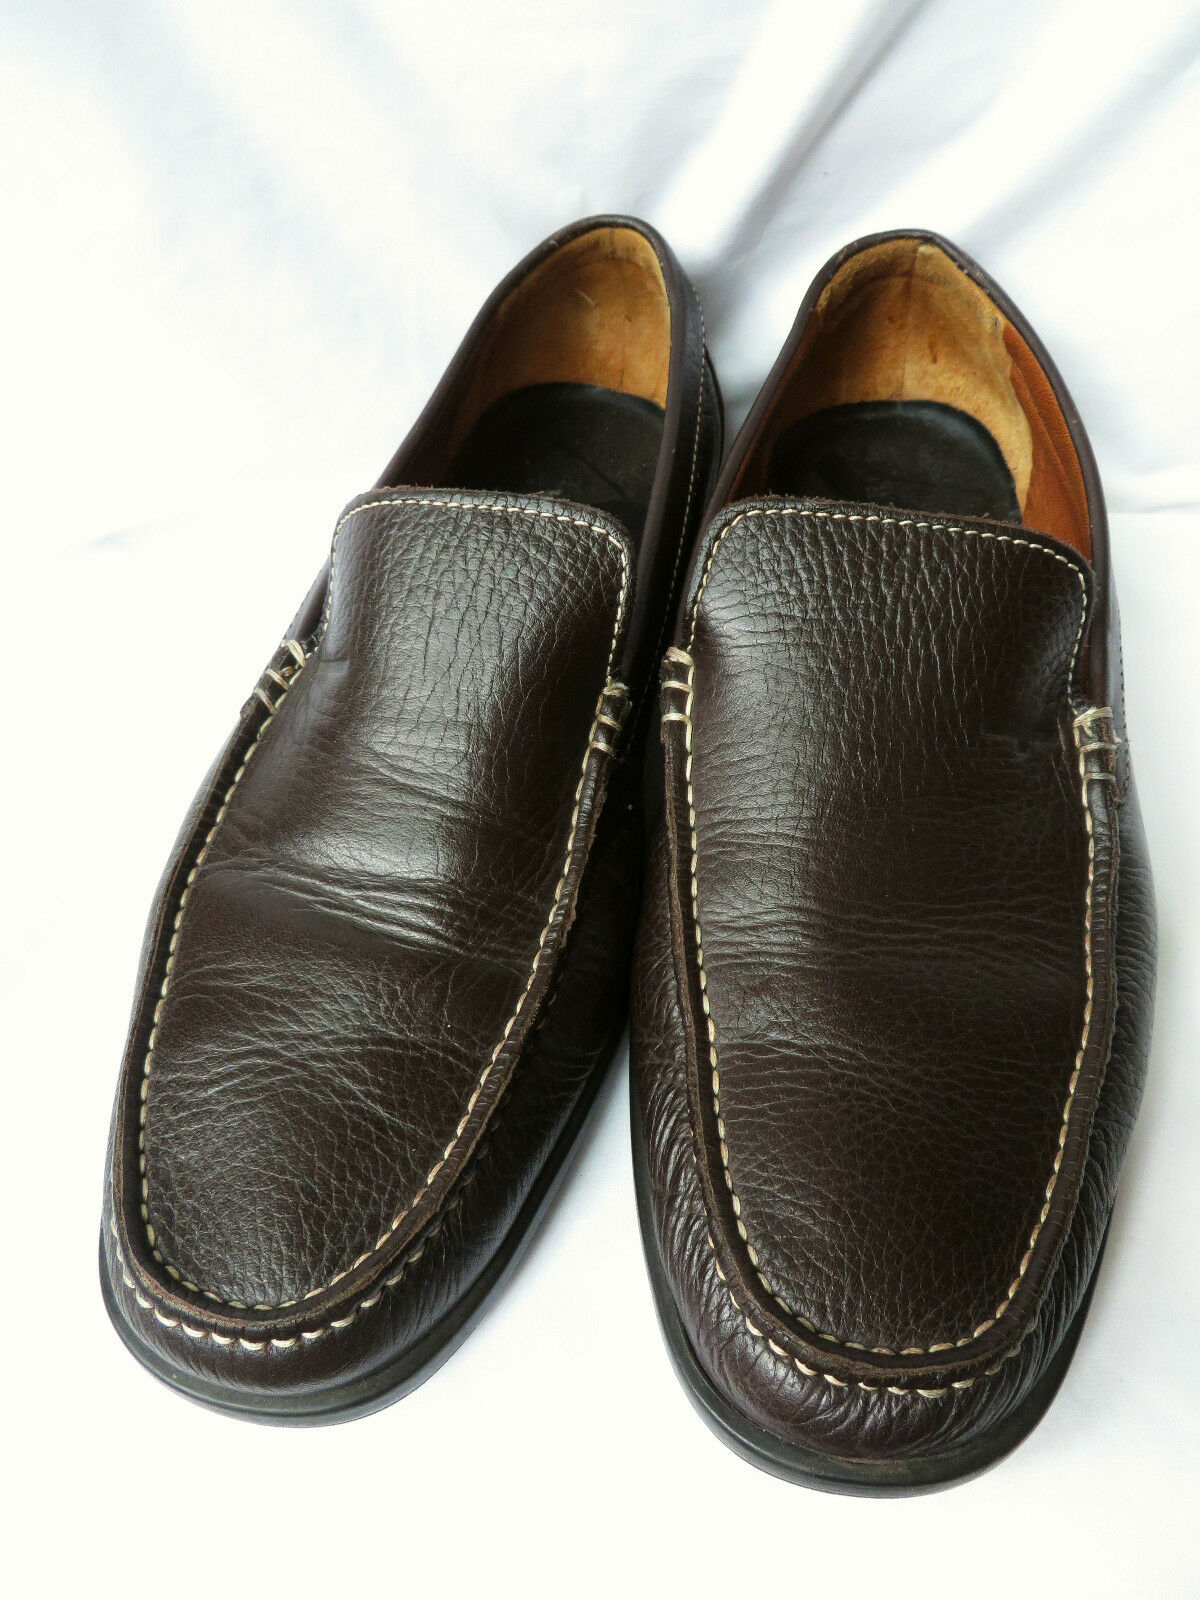 A A A TESTONI  Mens Dark Brown Leather Slip Ons Moc Loafers shoes 9.5 10 41dff8